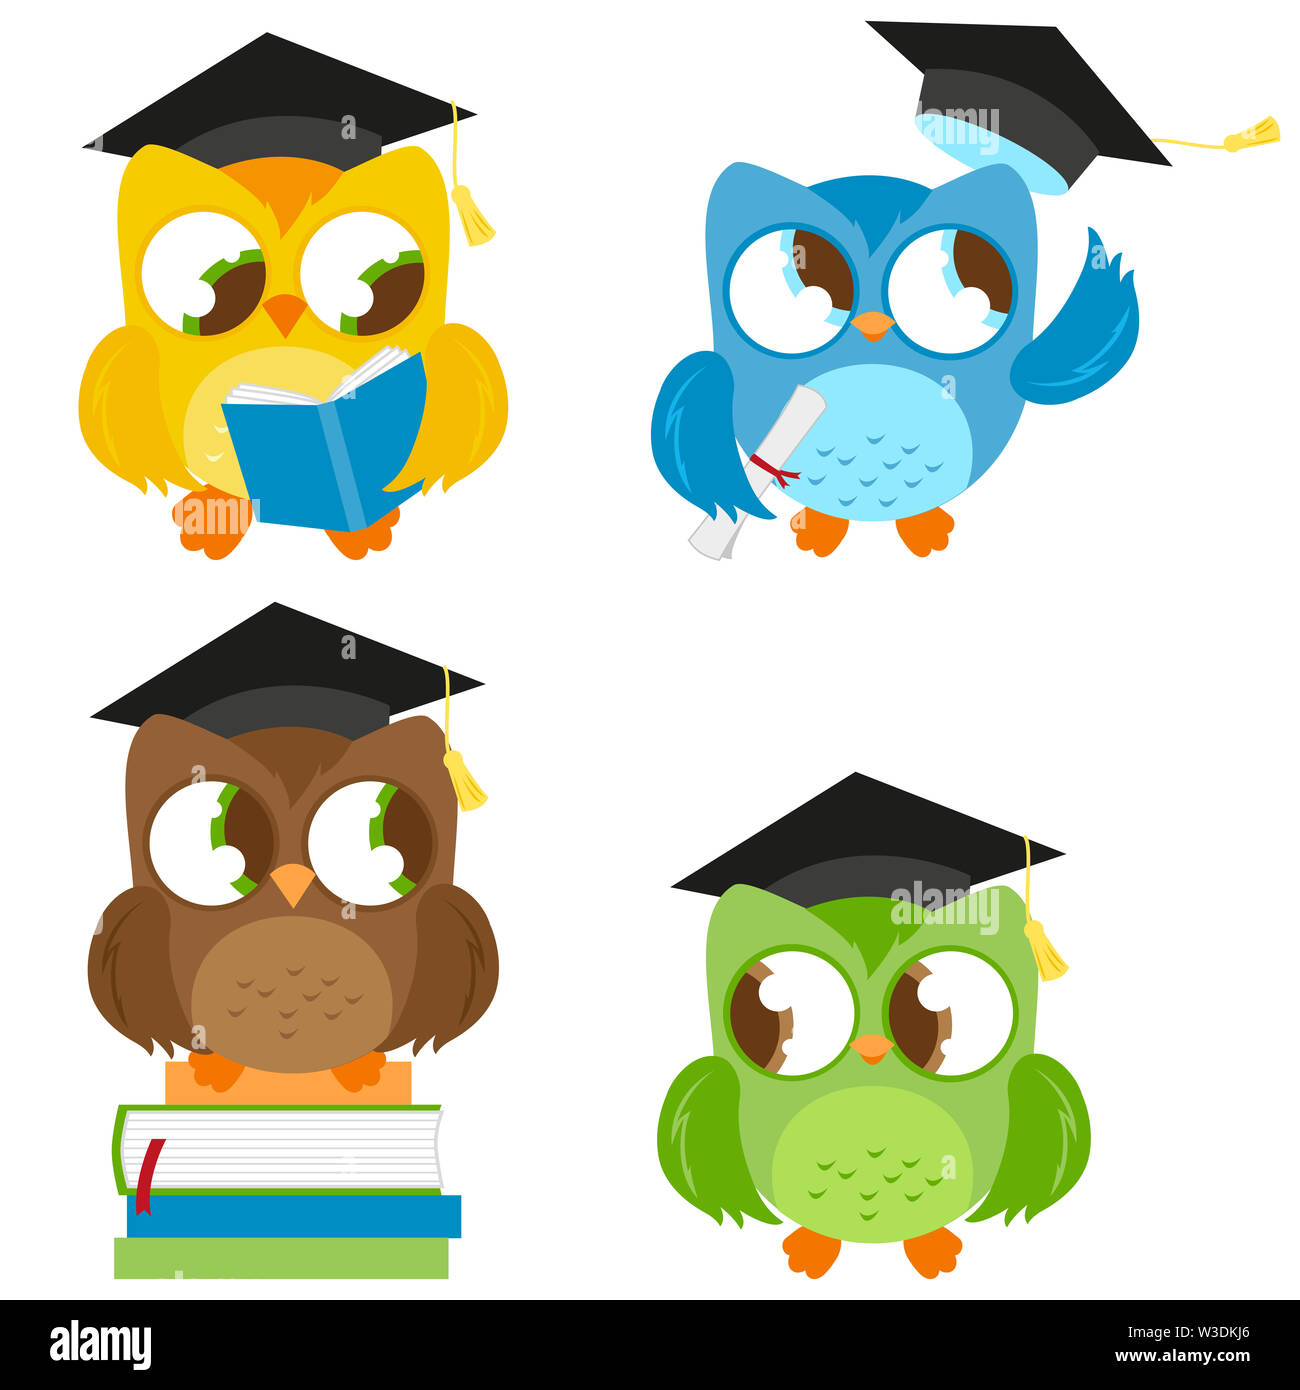 Illustration set of cute owls wearing mortarboard hats. - Stock Image